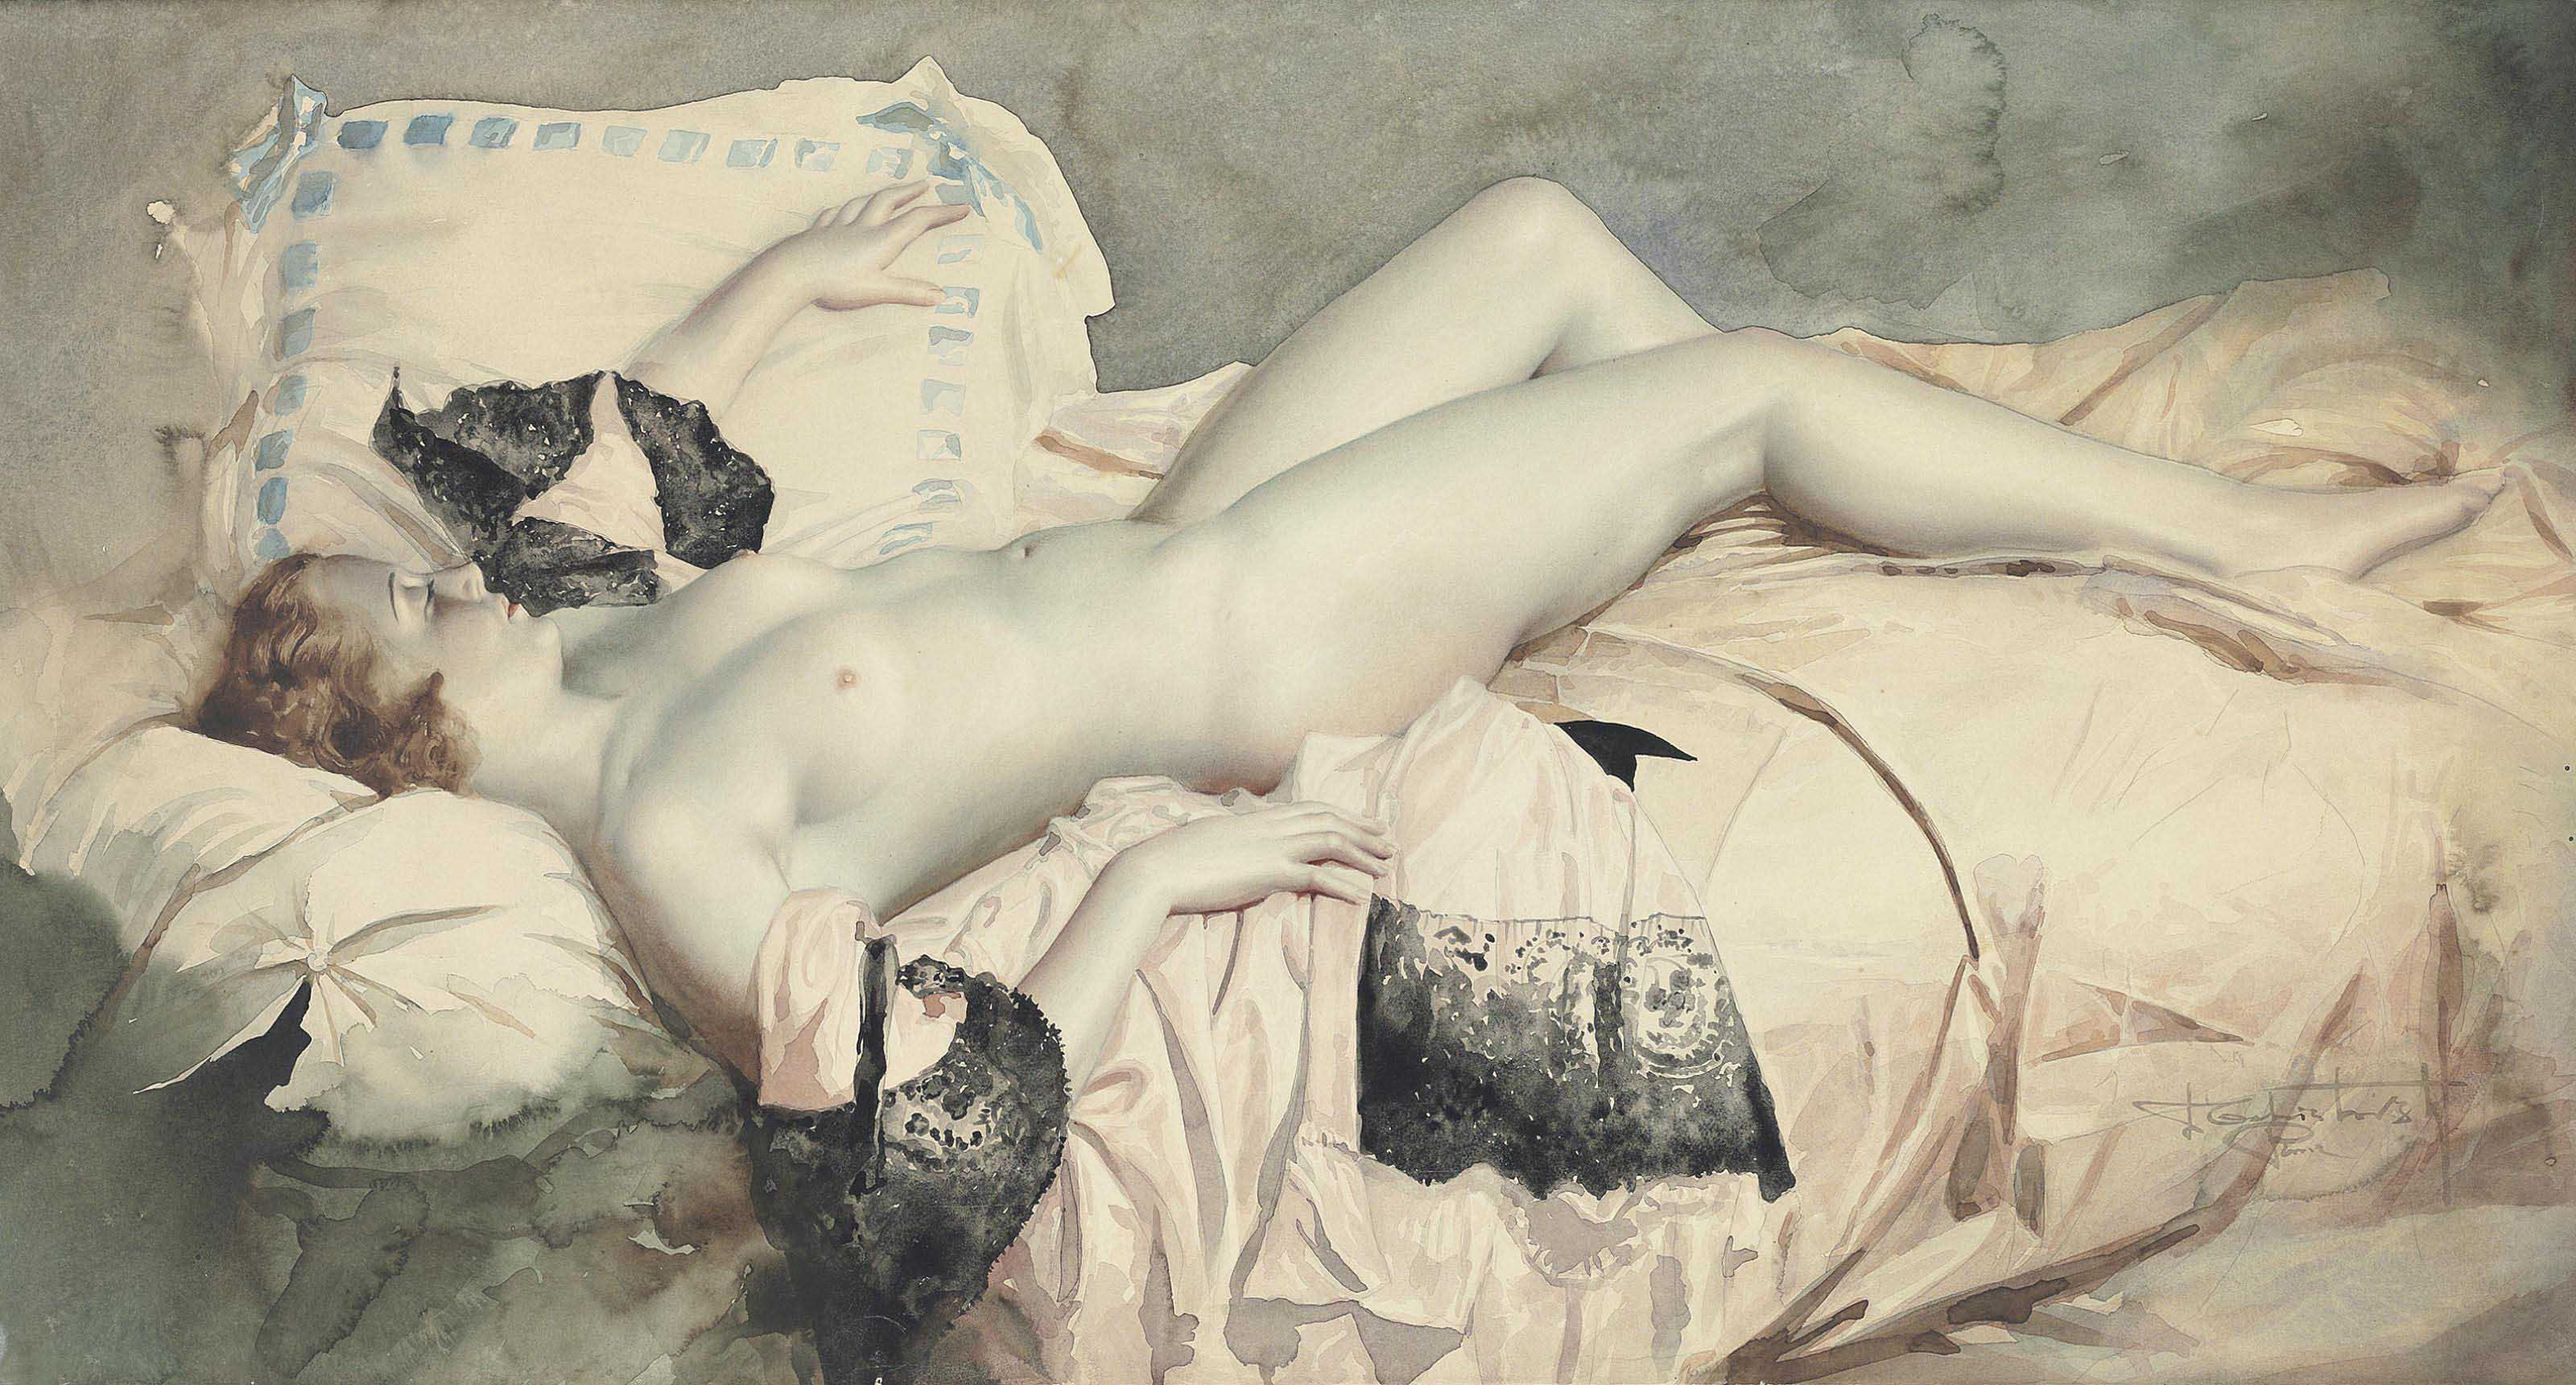 Reclining nude in black lace negligee